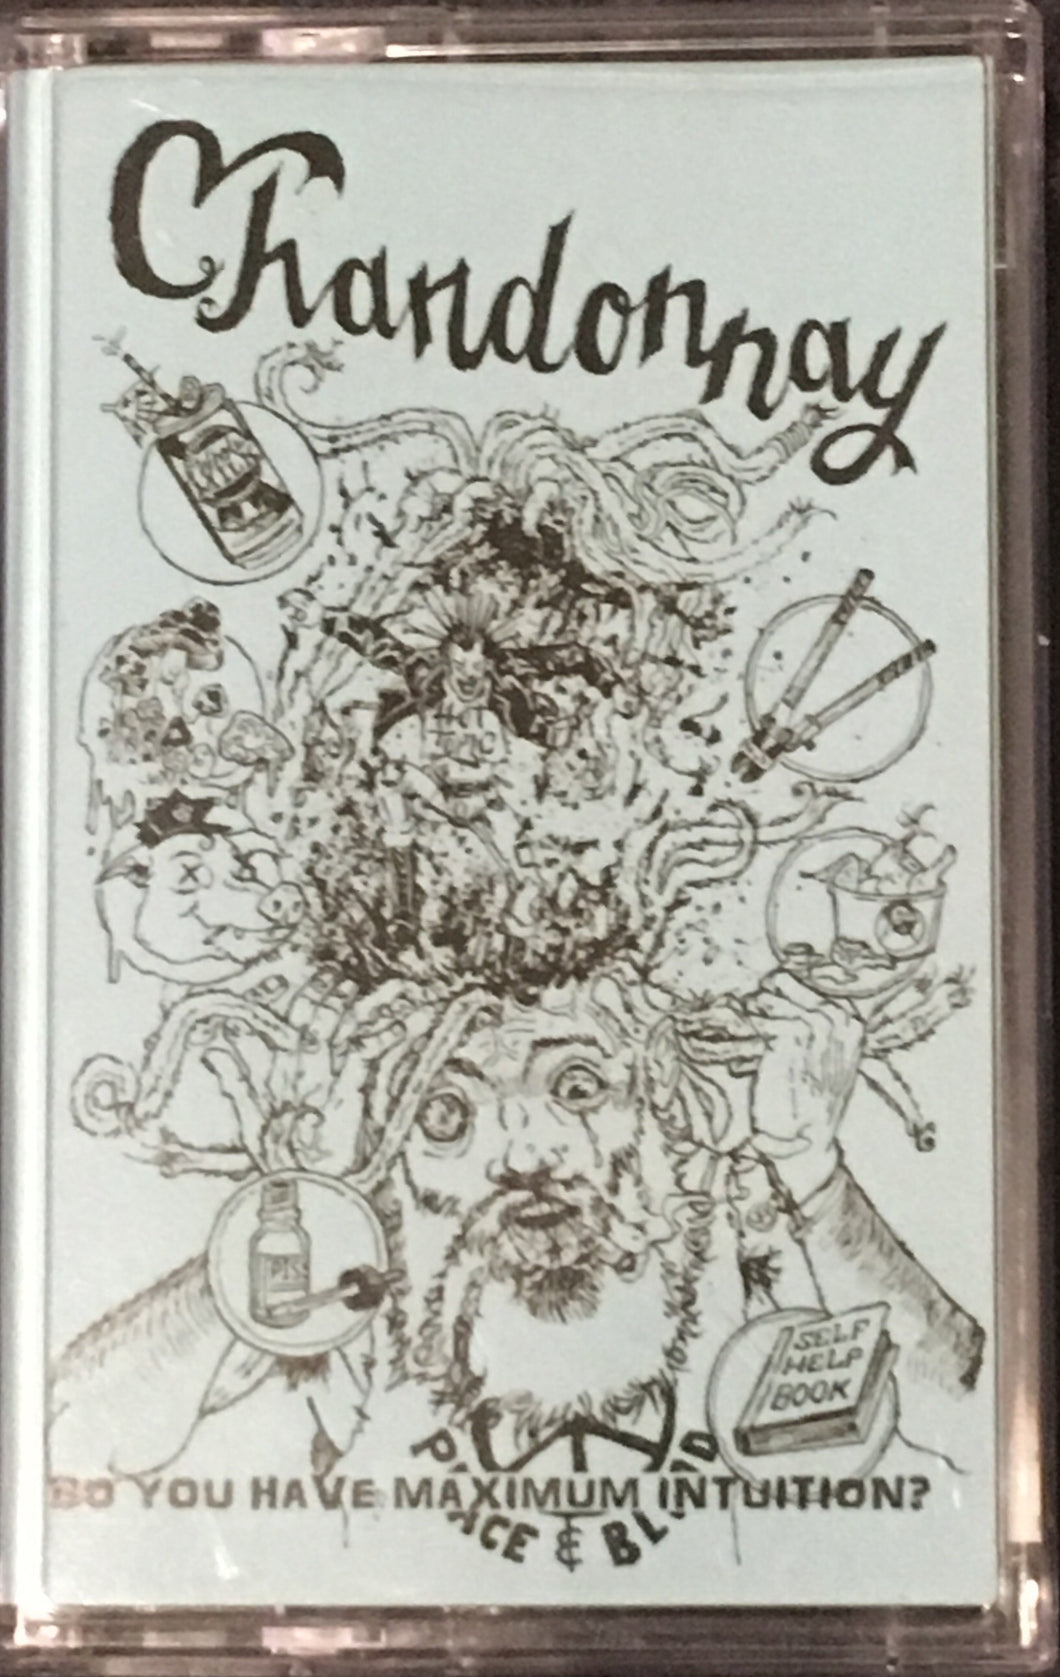 Chardonnay - 🔥Do You Have Maximum Intuition? (Tape Dad) Cassette NEW